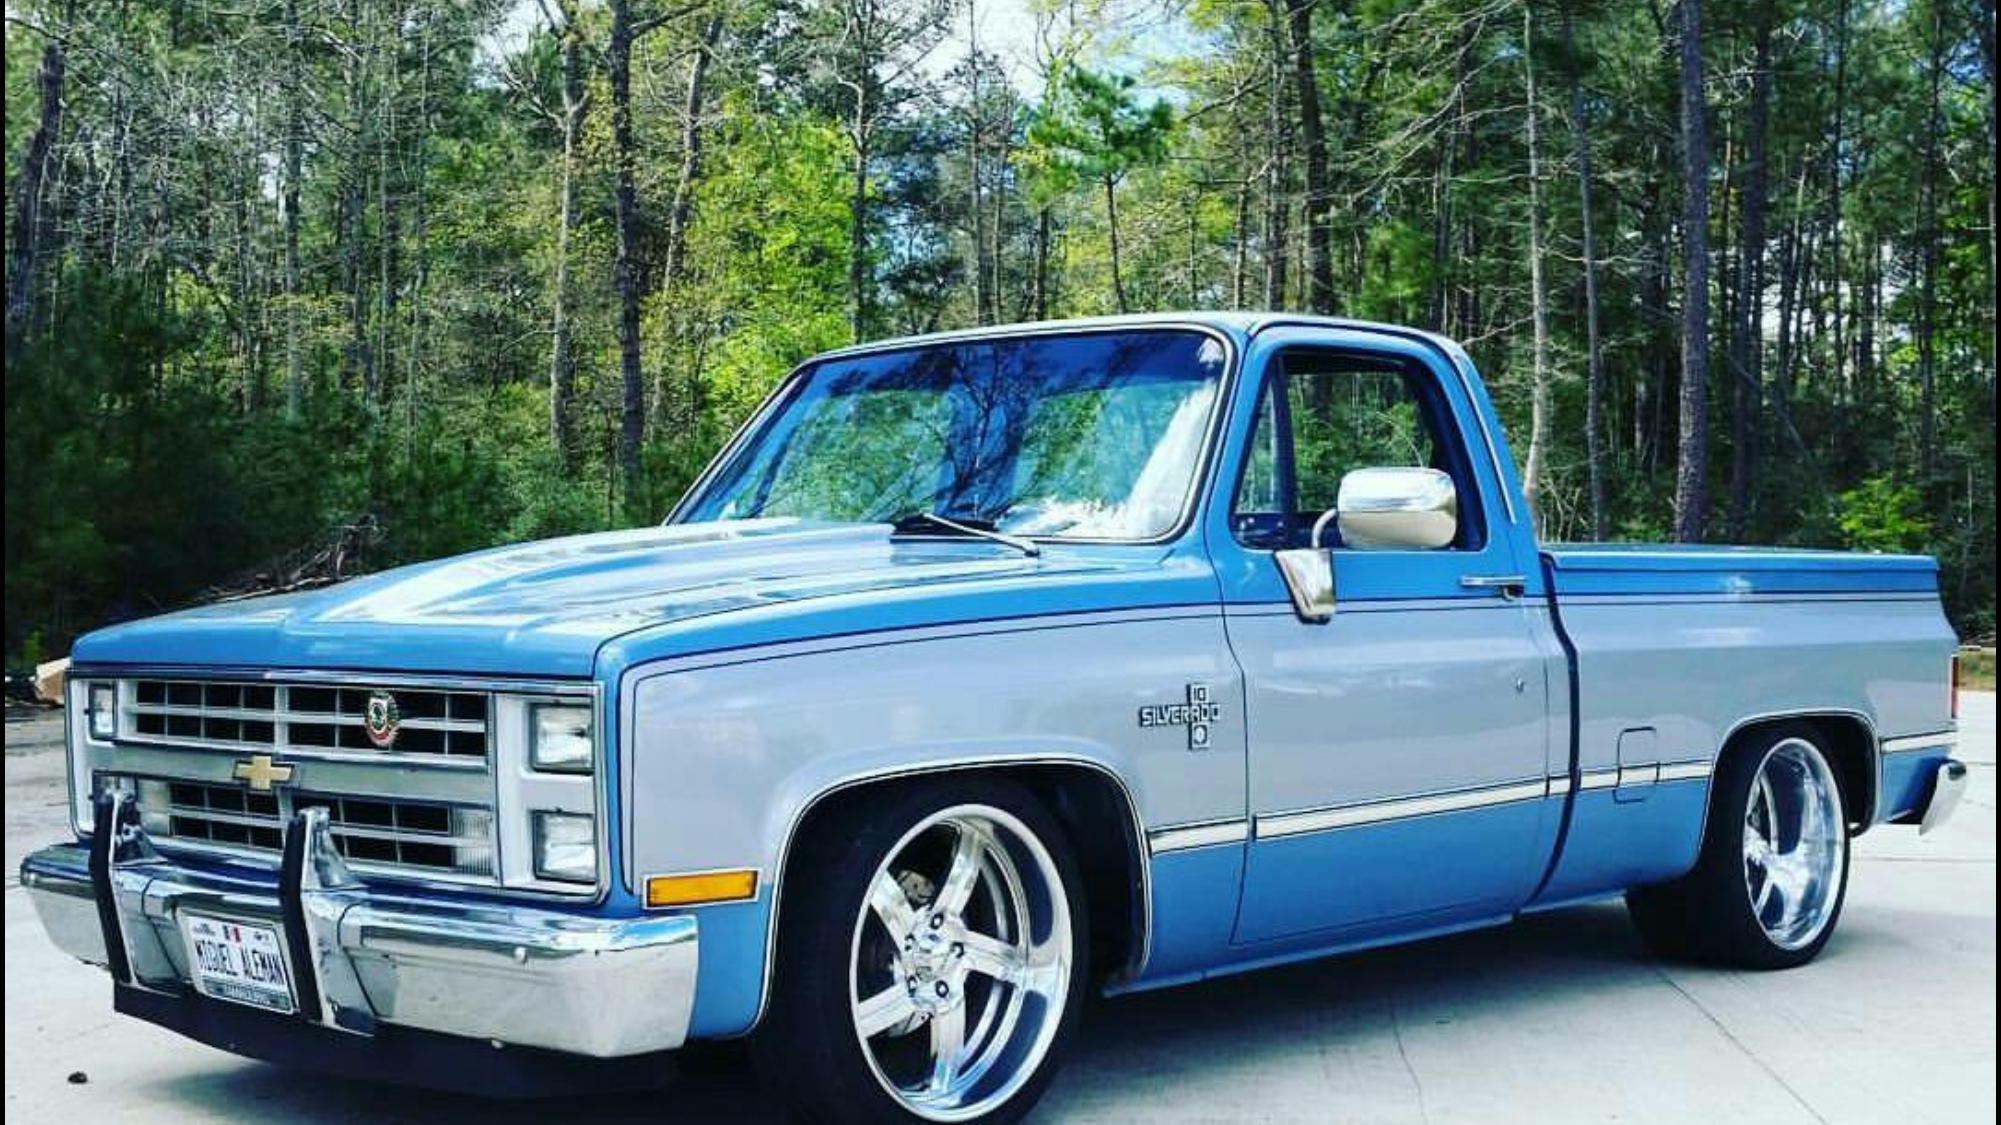 Pin by Les Gilliam on 73 / 87 square body Chevy trucks